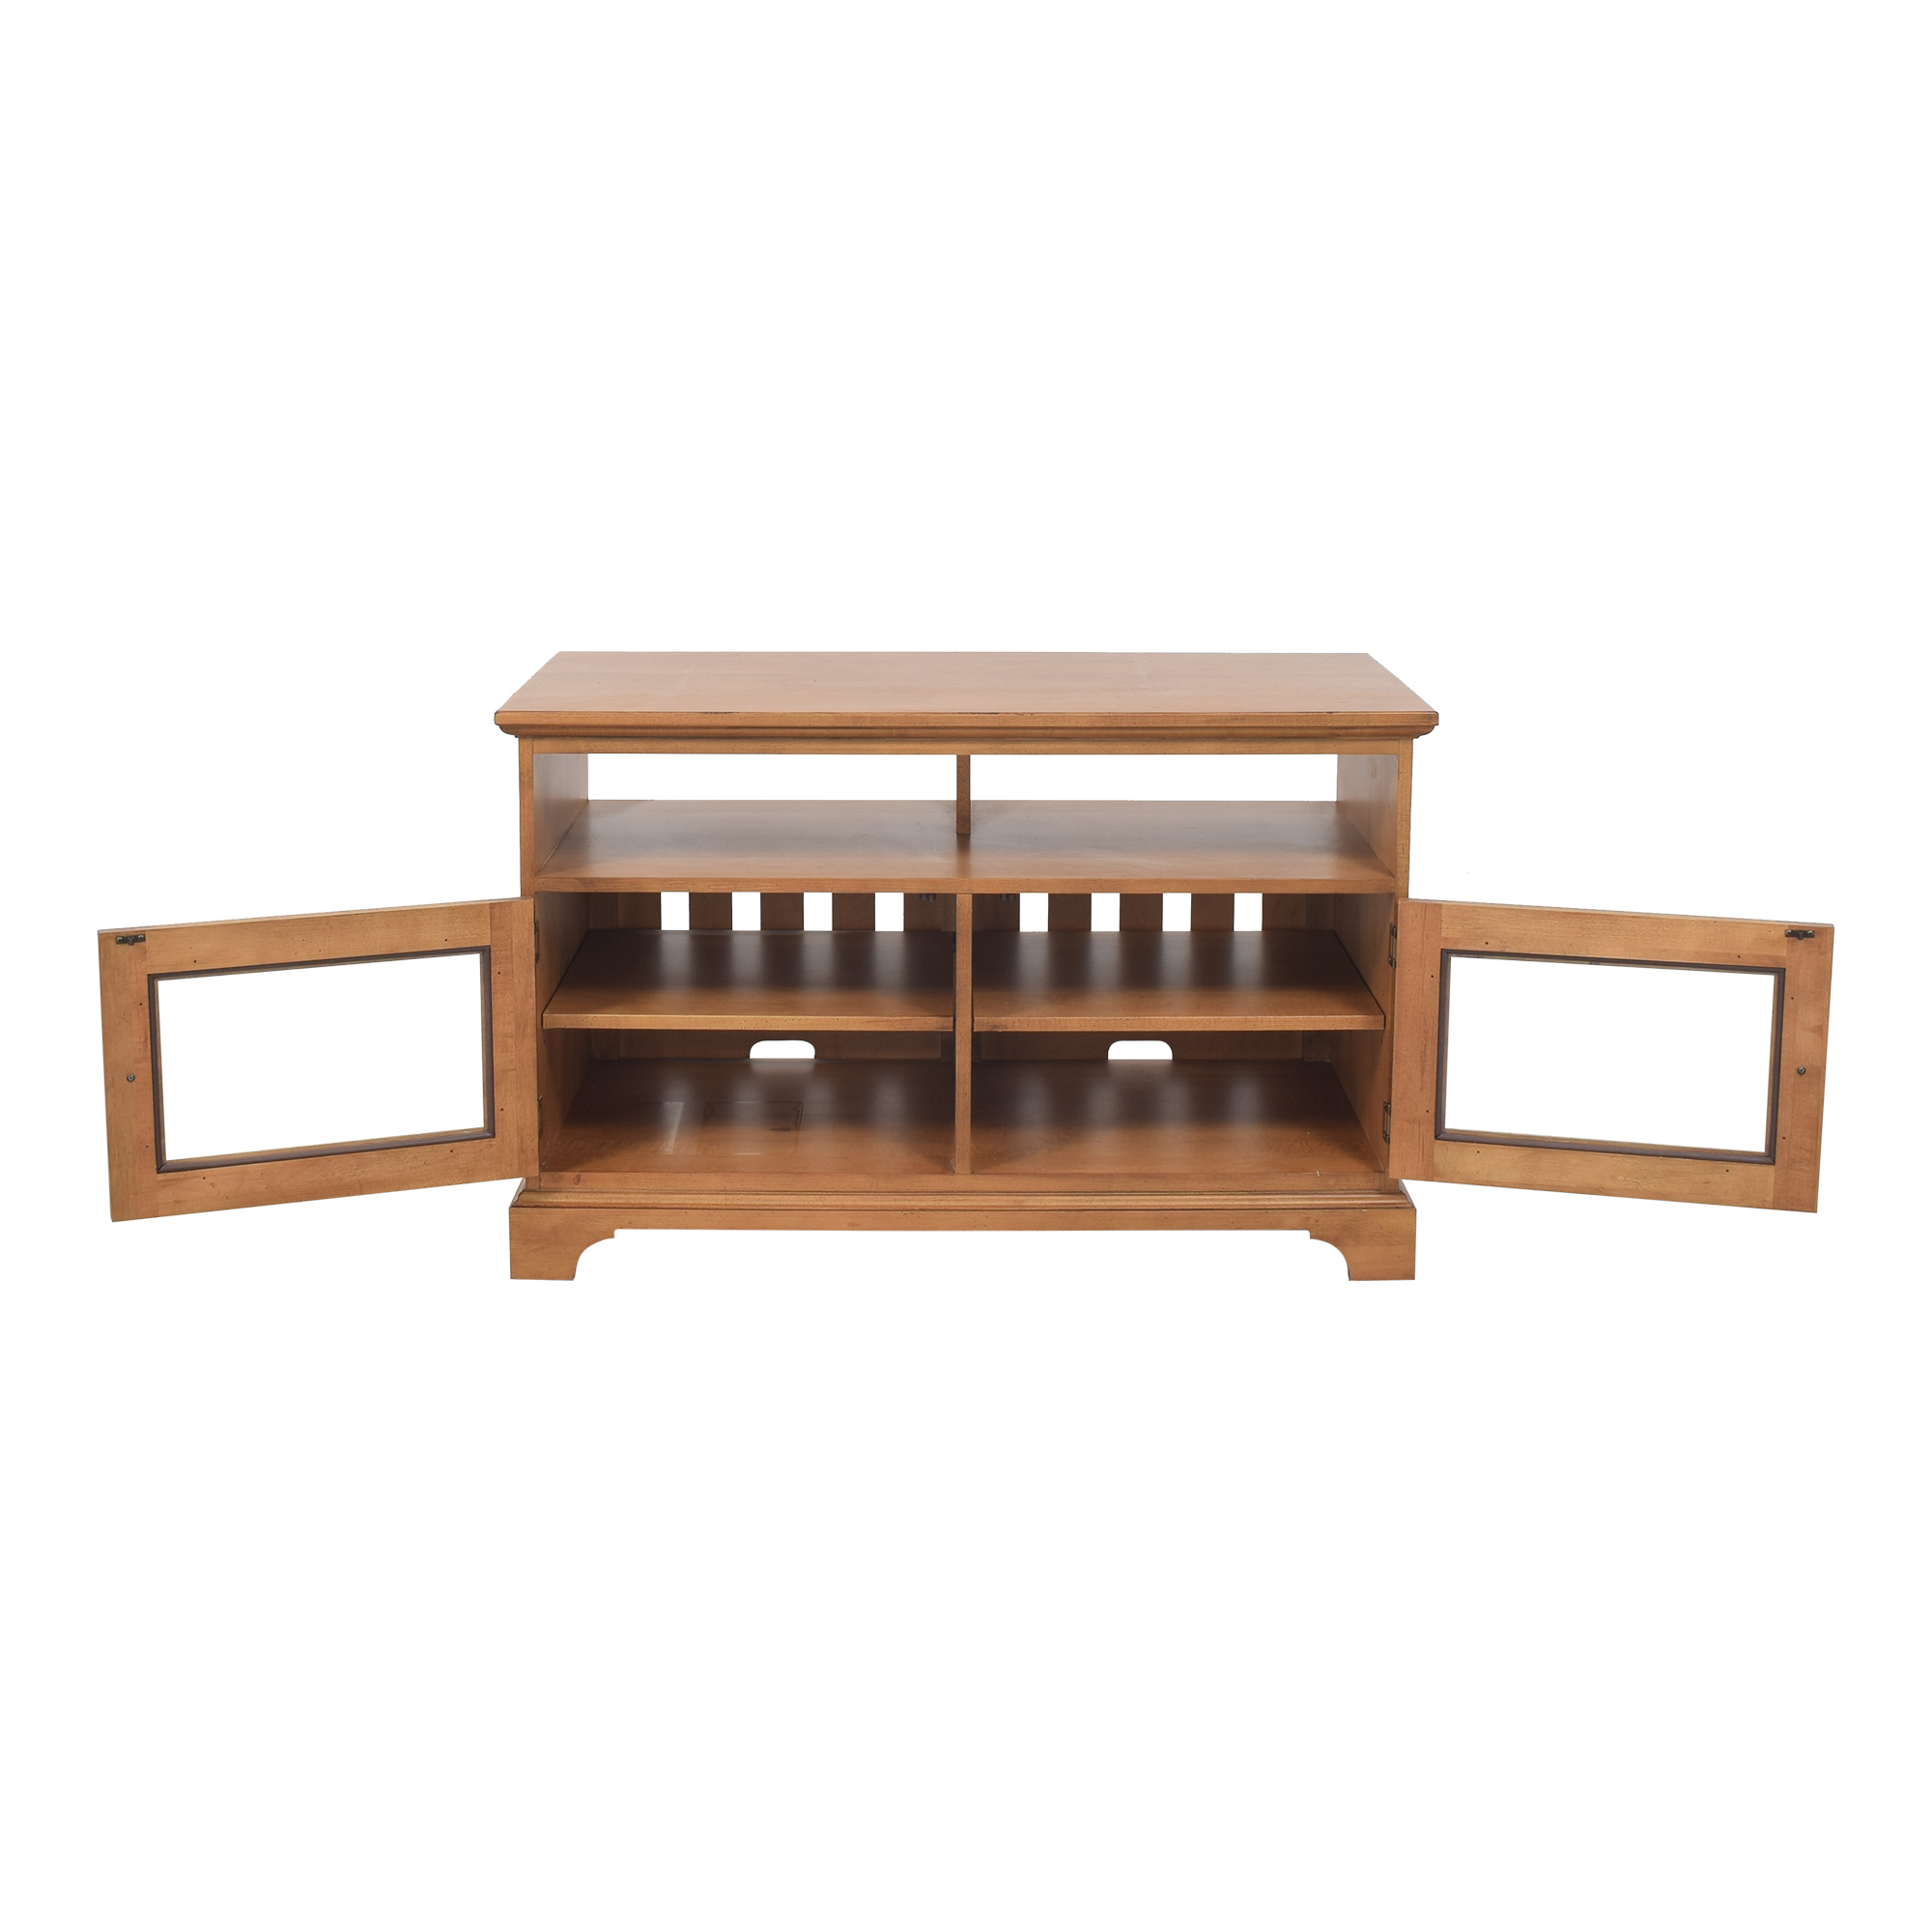 Ethan Allen New Country Media Cabinet / Storage